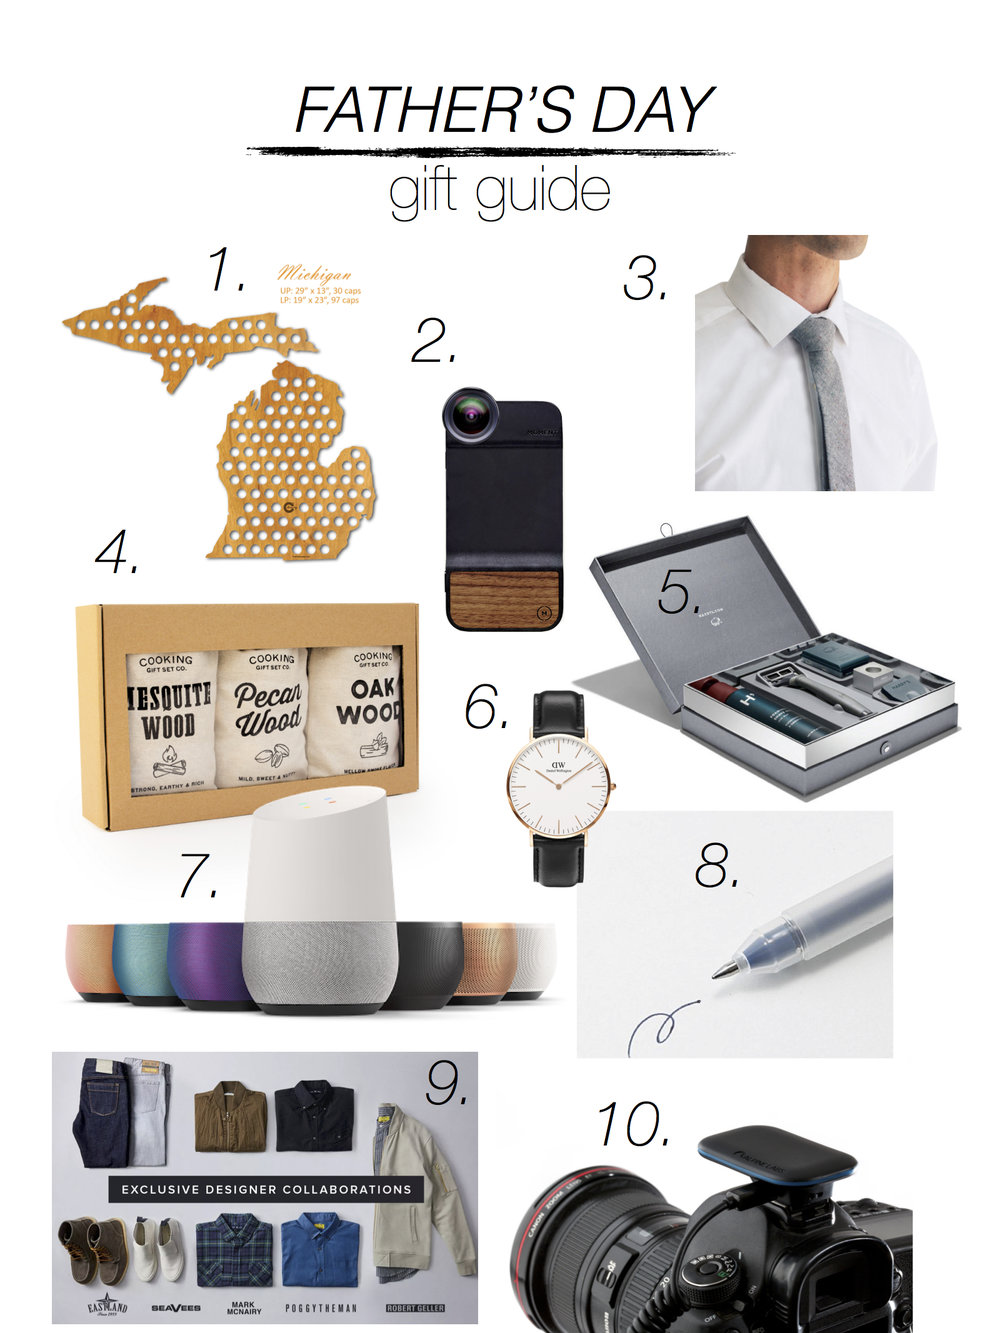 father's day gift guide father's day gifting dads dad